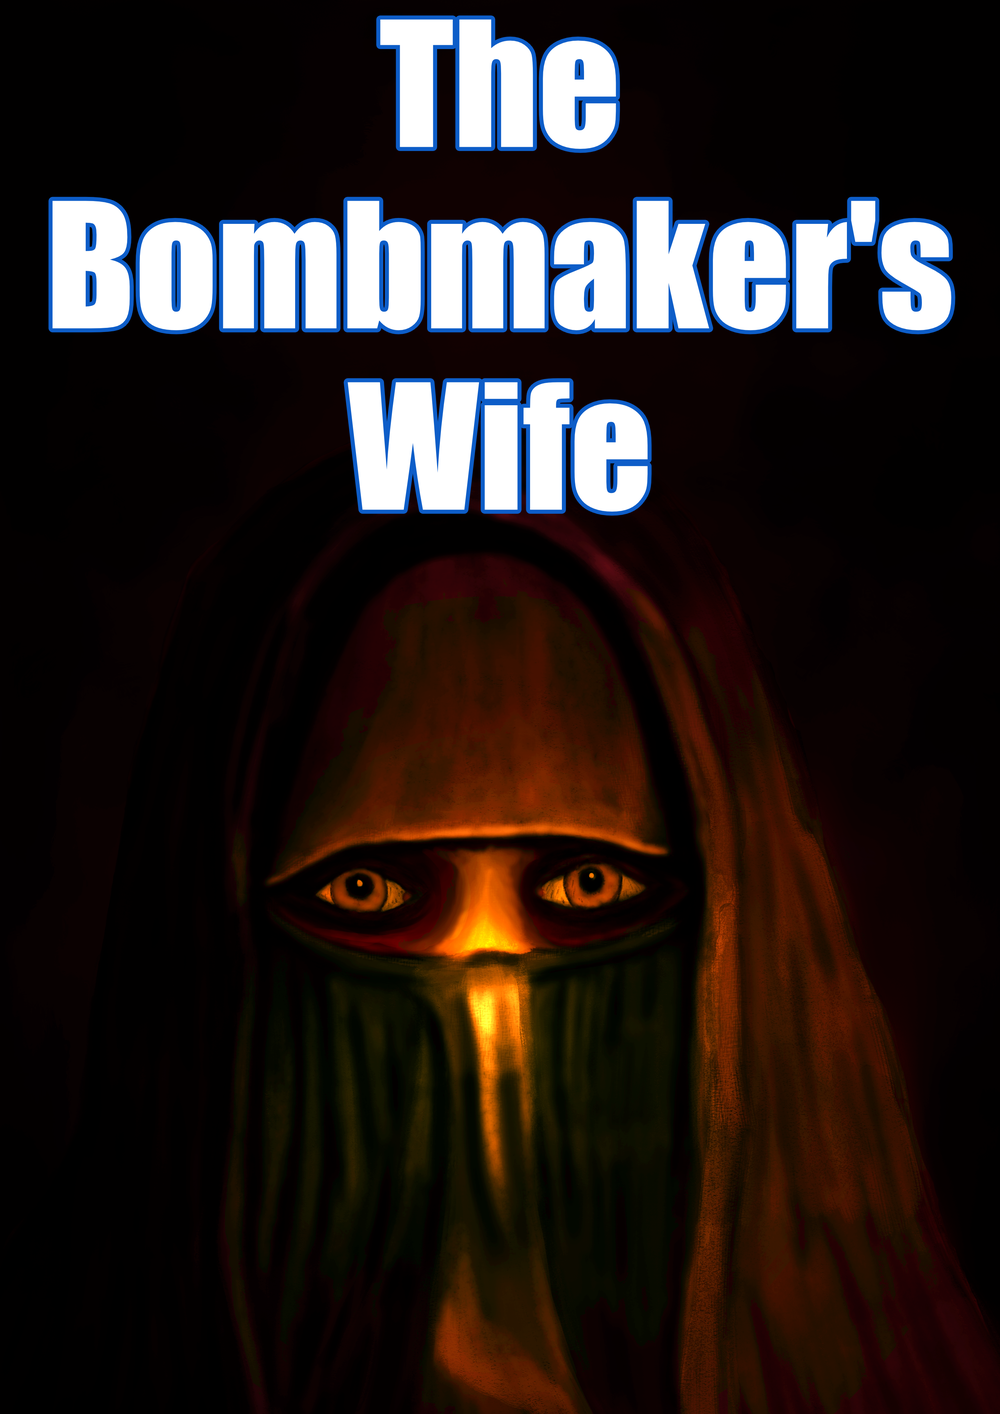 An alternate cover for The Bombmaker's Wife